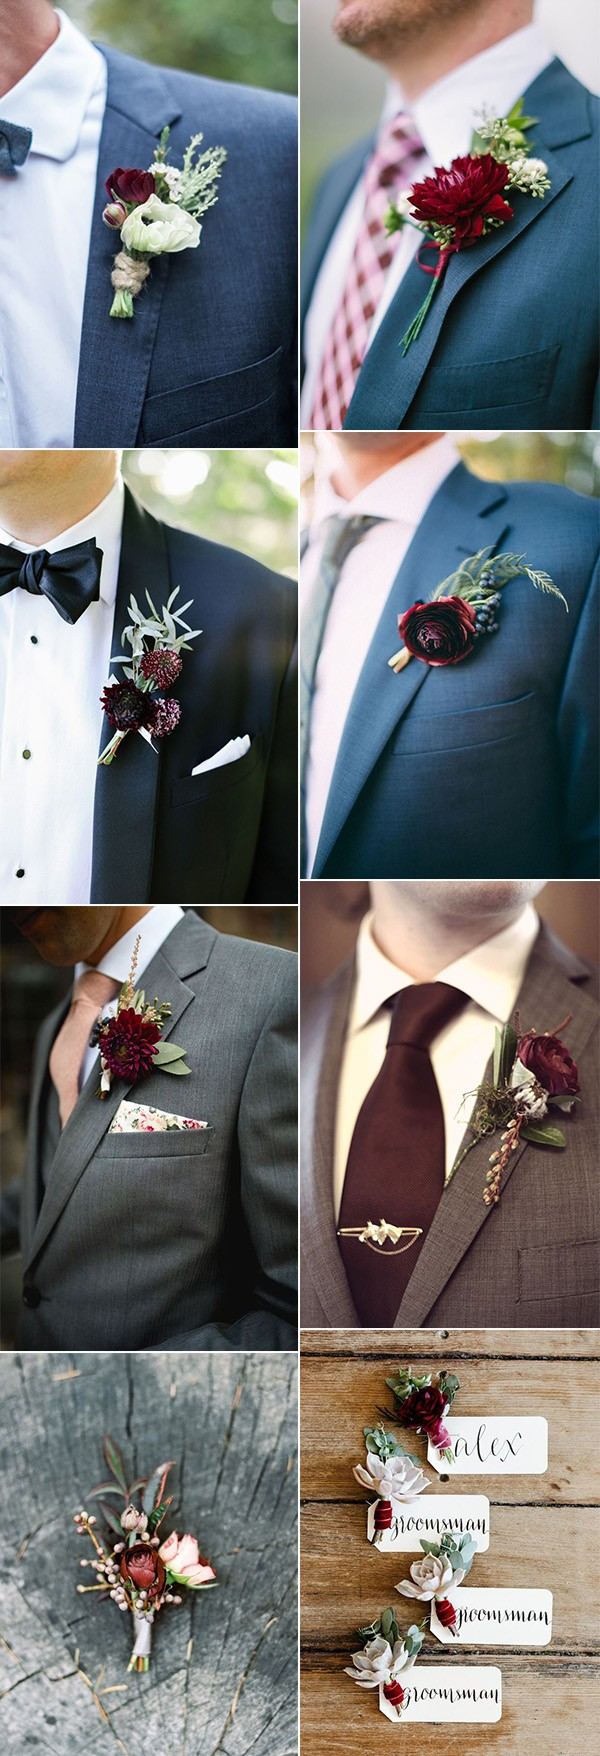 burgundy Wedding Boutonnieres for fall and winter weddings